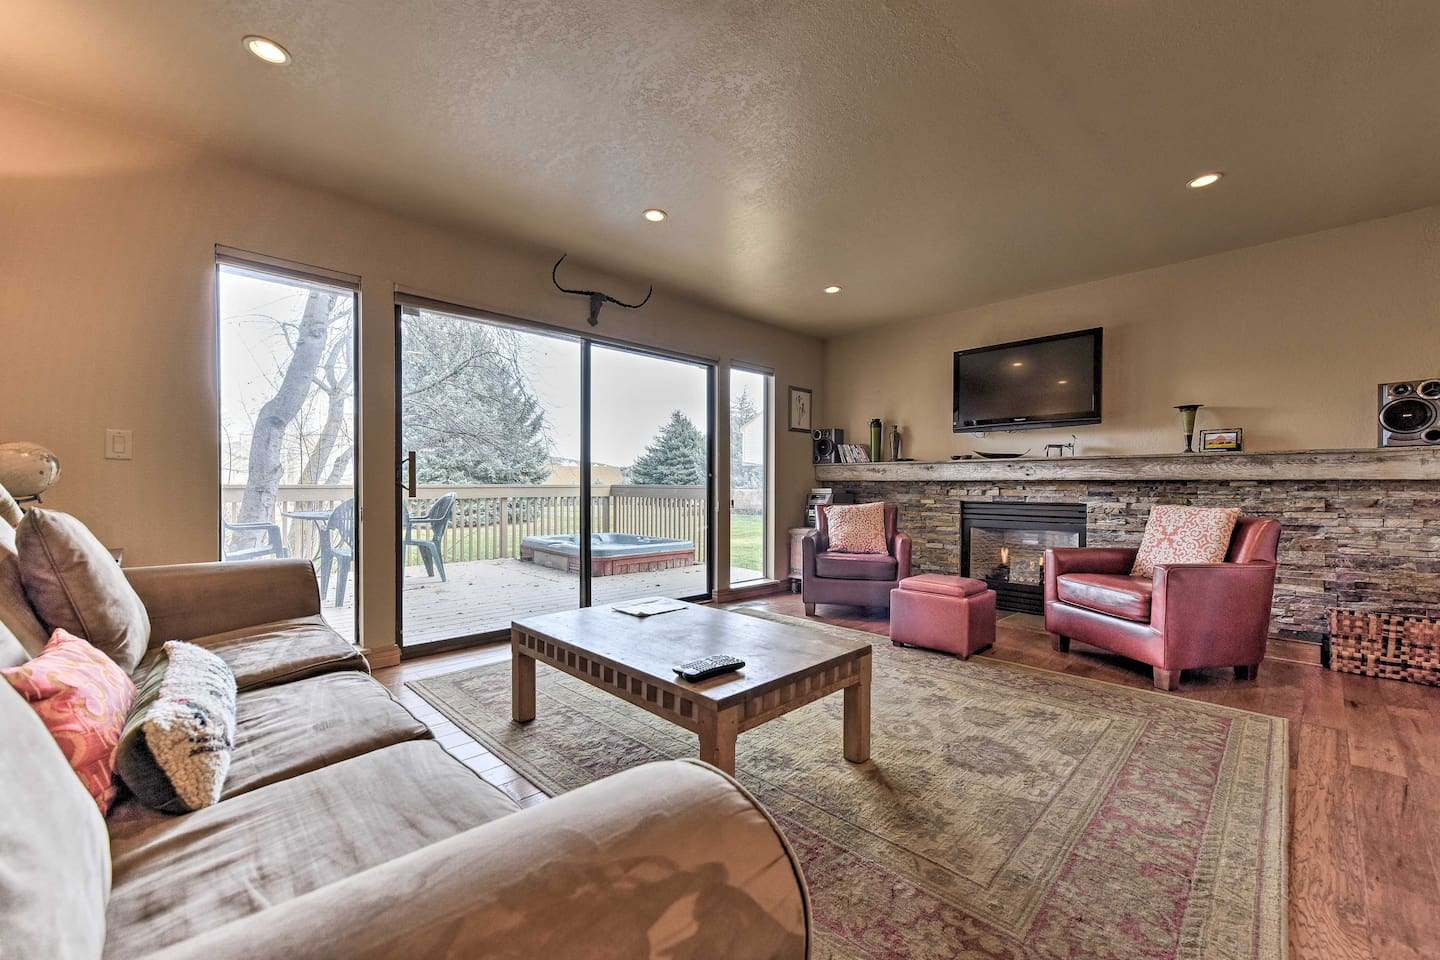 Visit the mountain town of Park City and stay at this vacation rental condo!